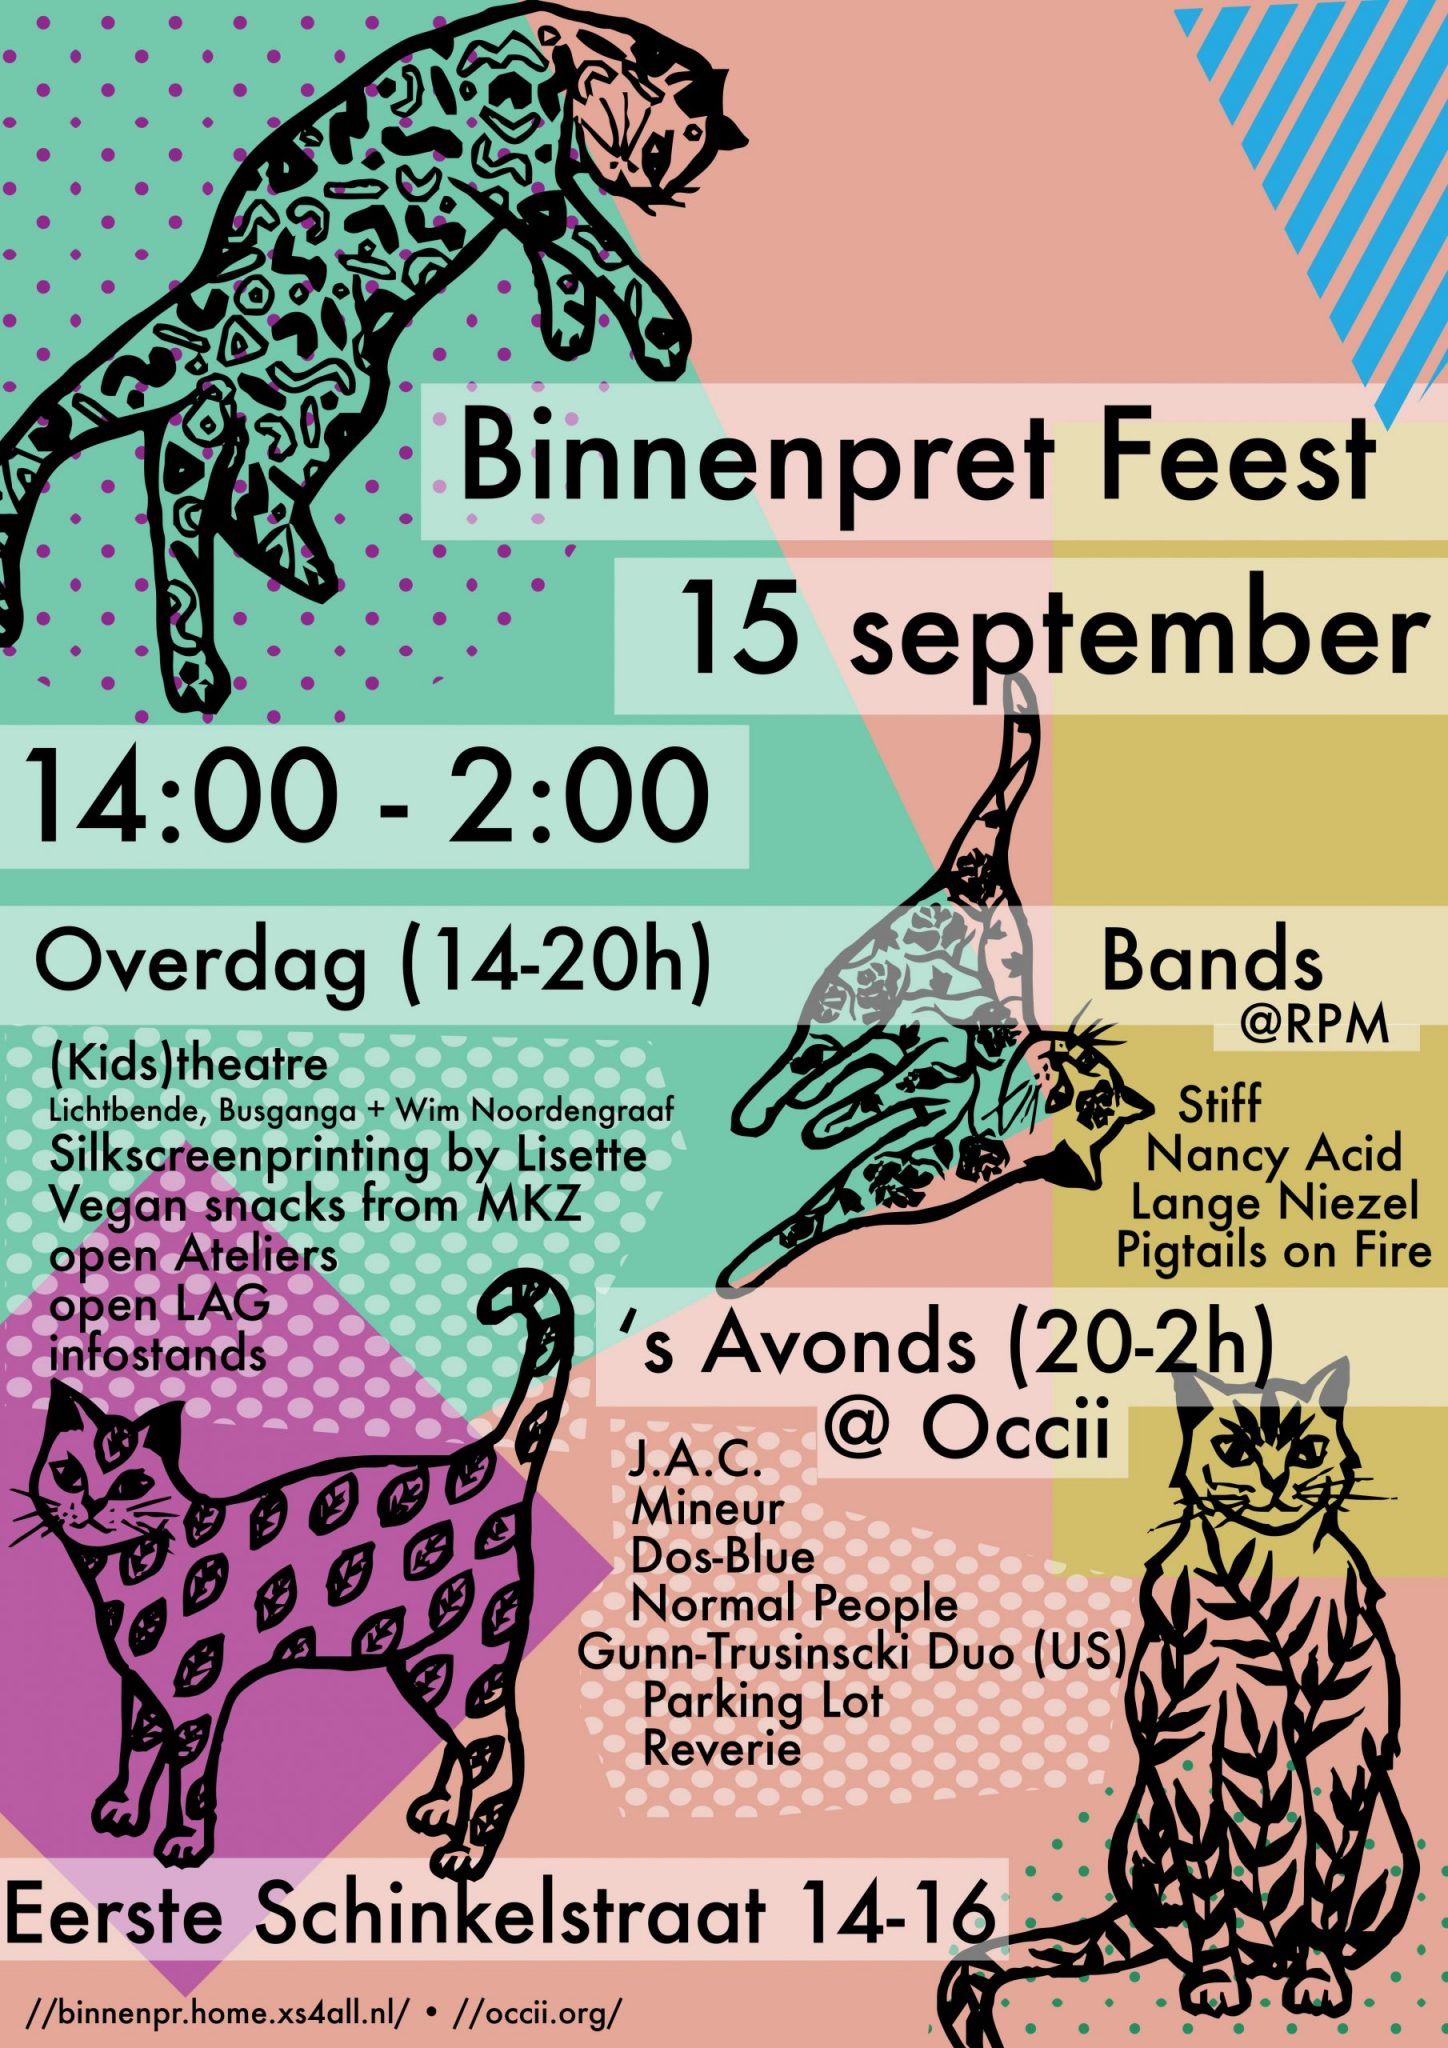 BINNENPRET FEEST w/ GUNN-TRUSCINSKI DUO (US) + PARKING LOT + RÊVERIE + PIGTAILS ON FIRE + MINEUR + J.A.C. + DOS-BLUE + STIFF + LANGE NIEZEL + ROSIE + LICHTBENDE